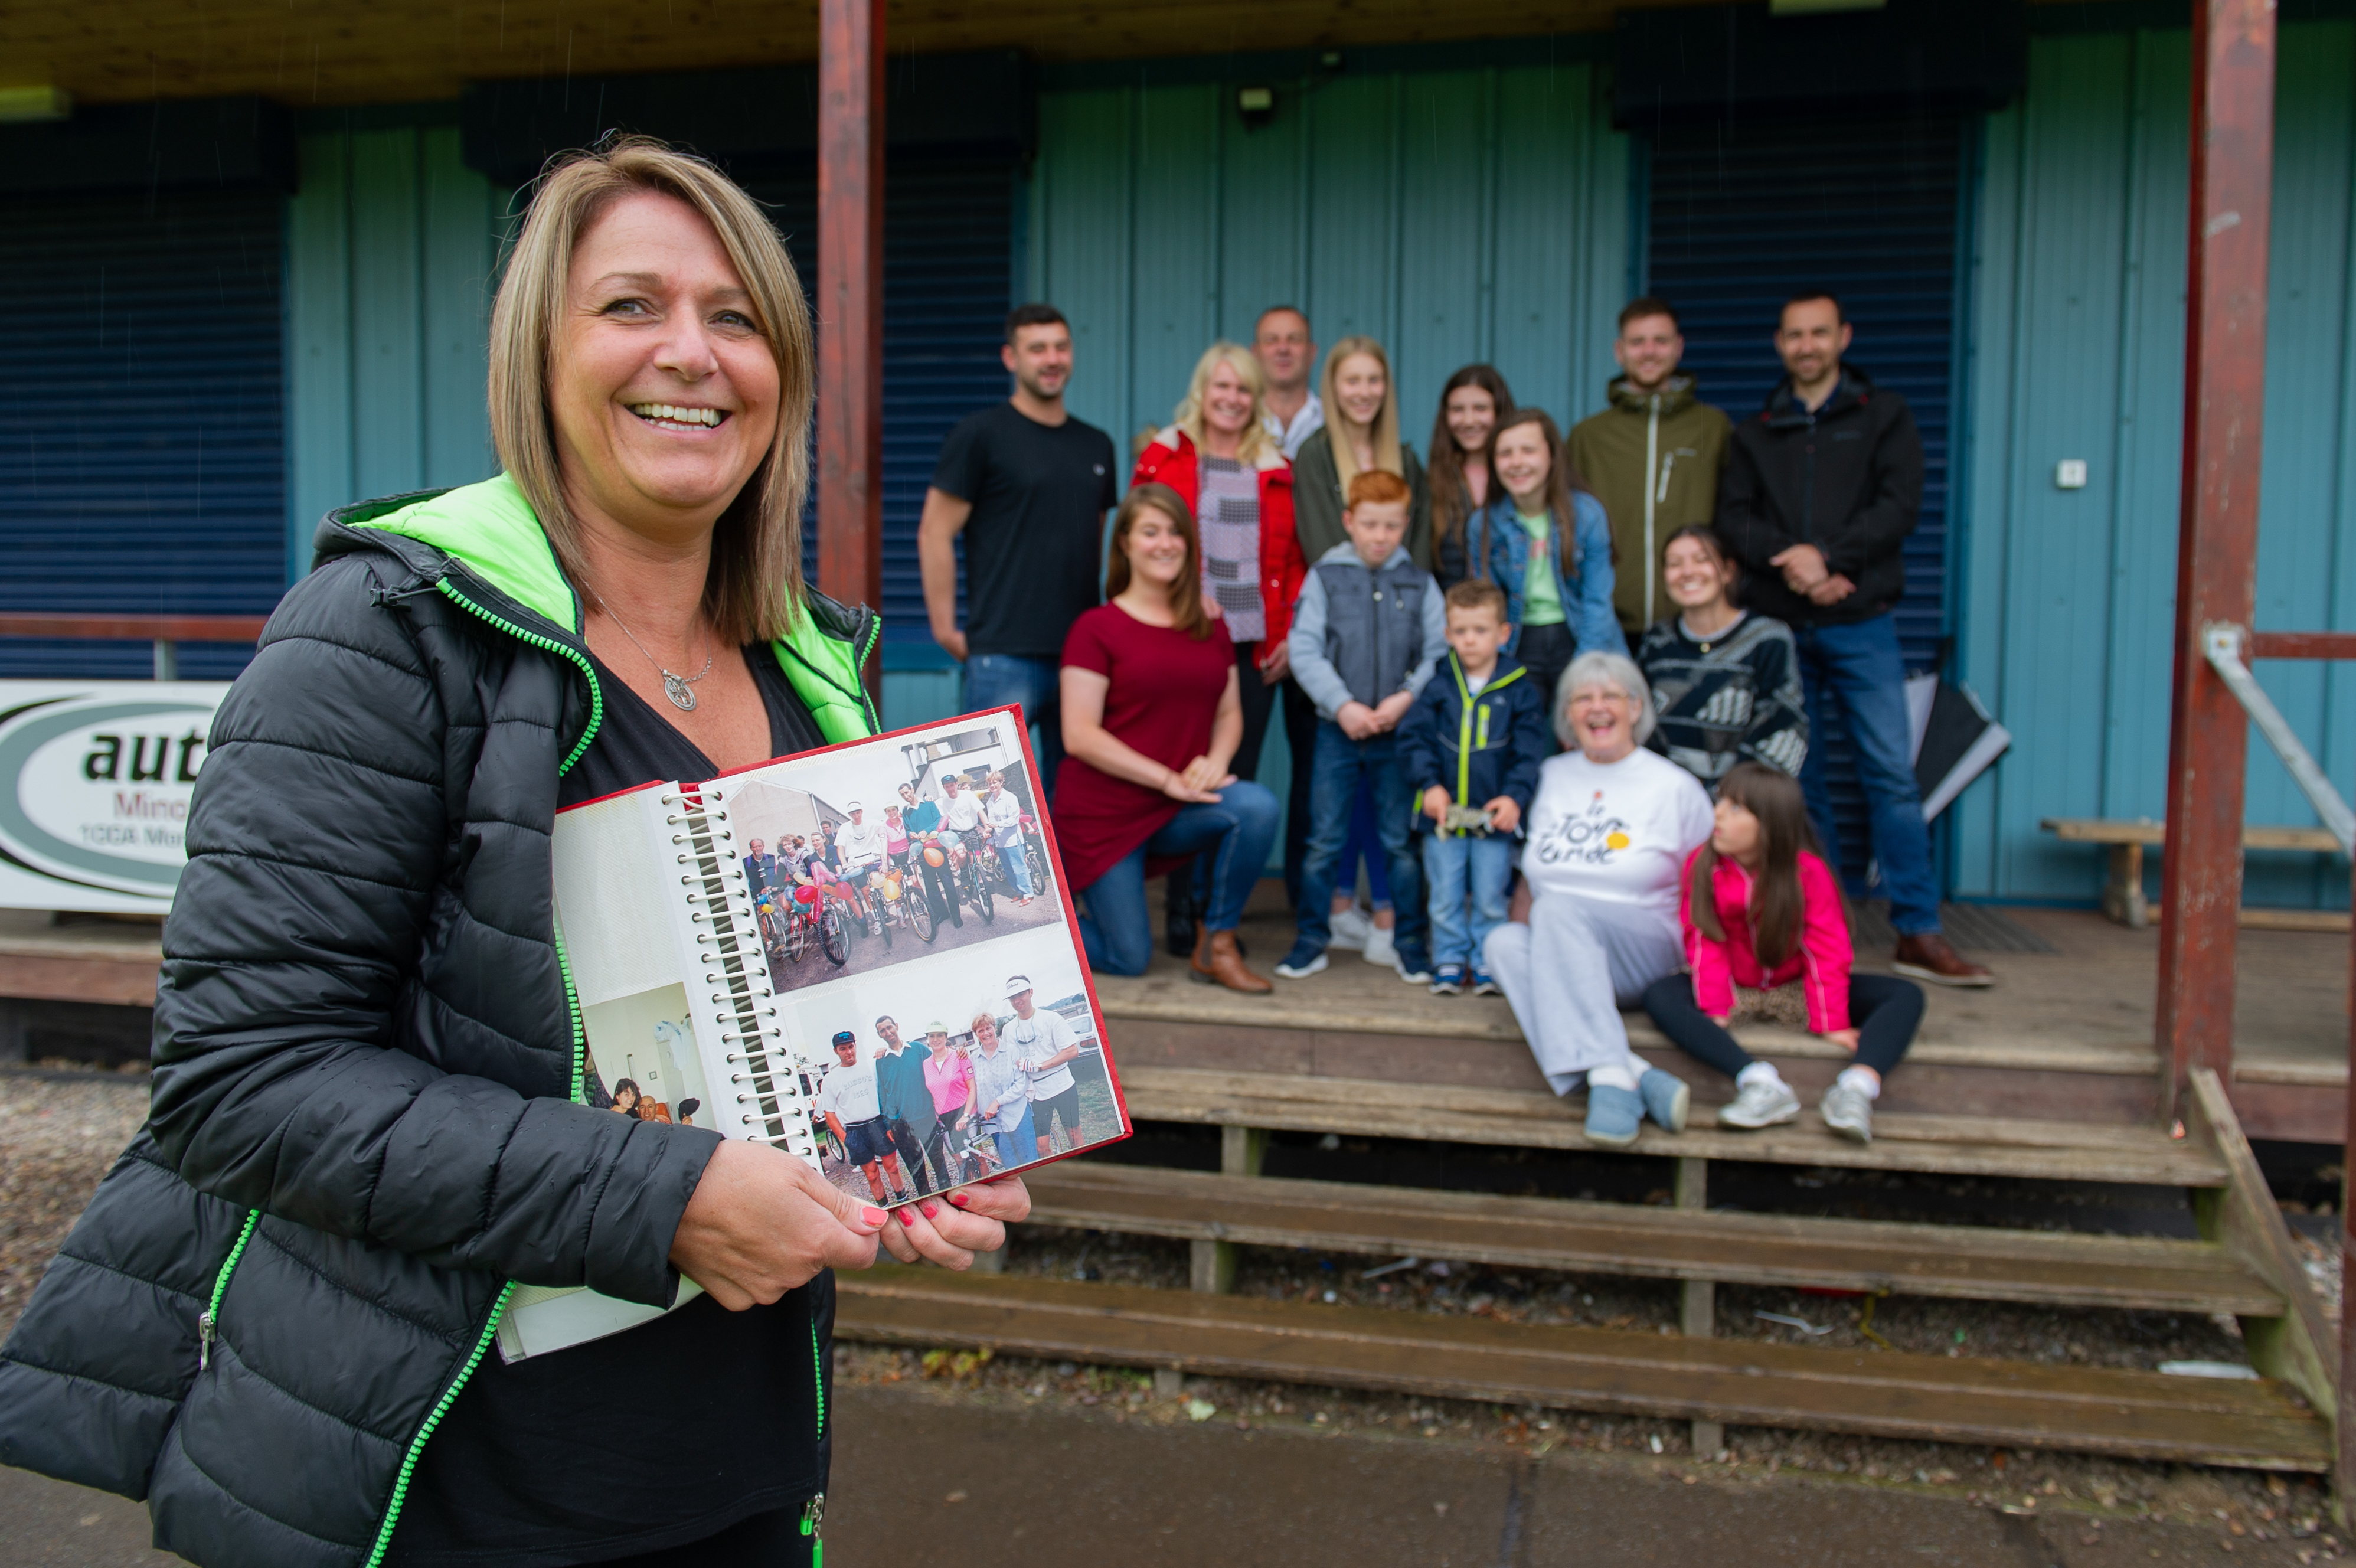 Joe Russo's daughter, Alison Brown, and the family are hoping for good support for the fifth Tour de Tayside.